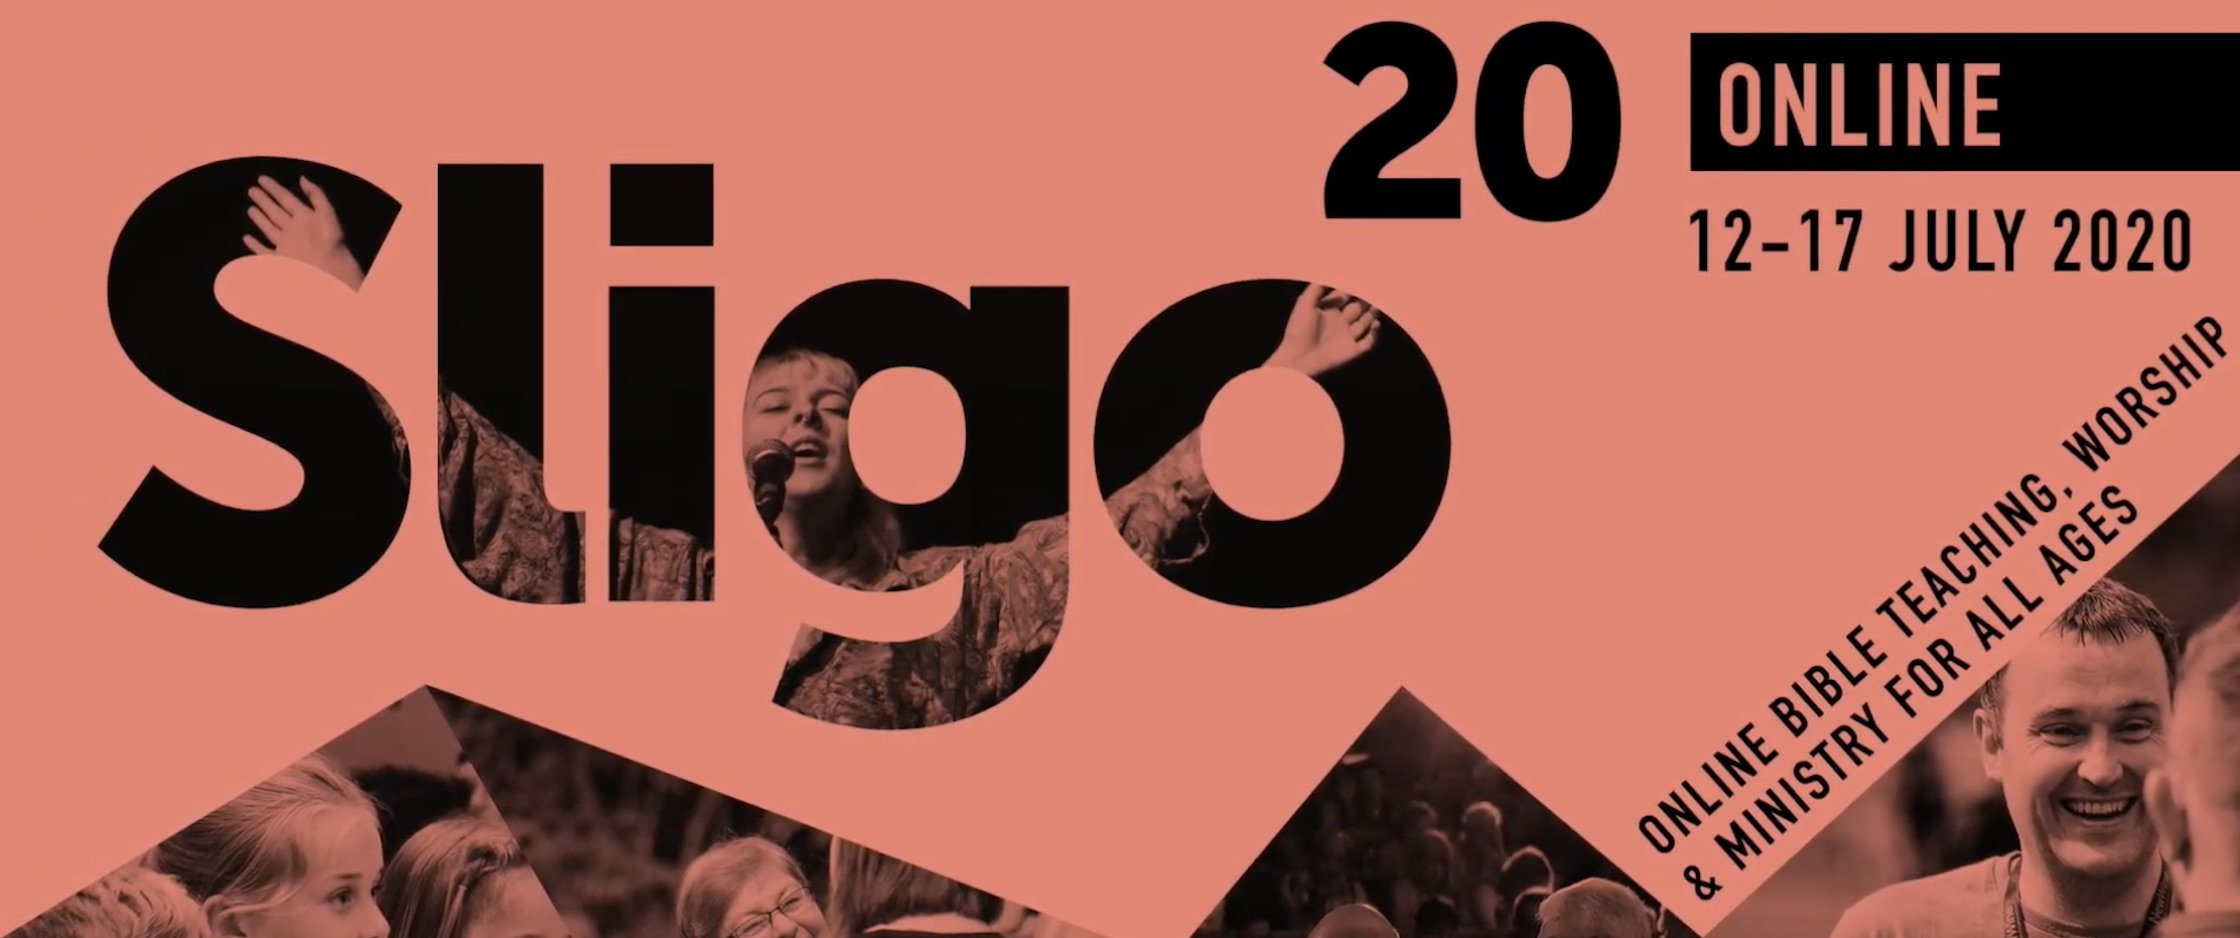 Sligo 2020 goes online